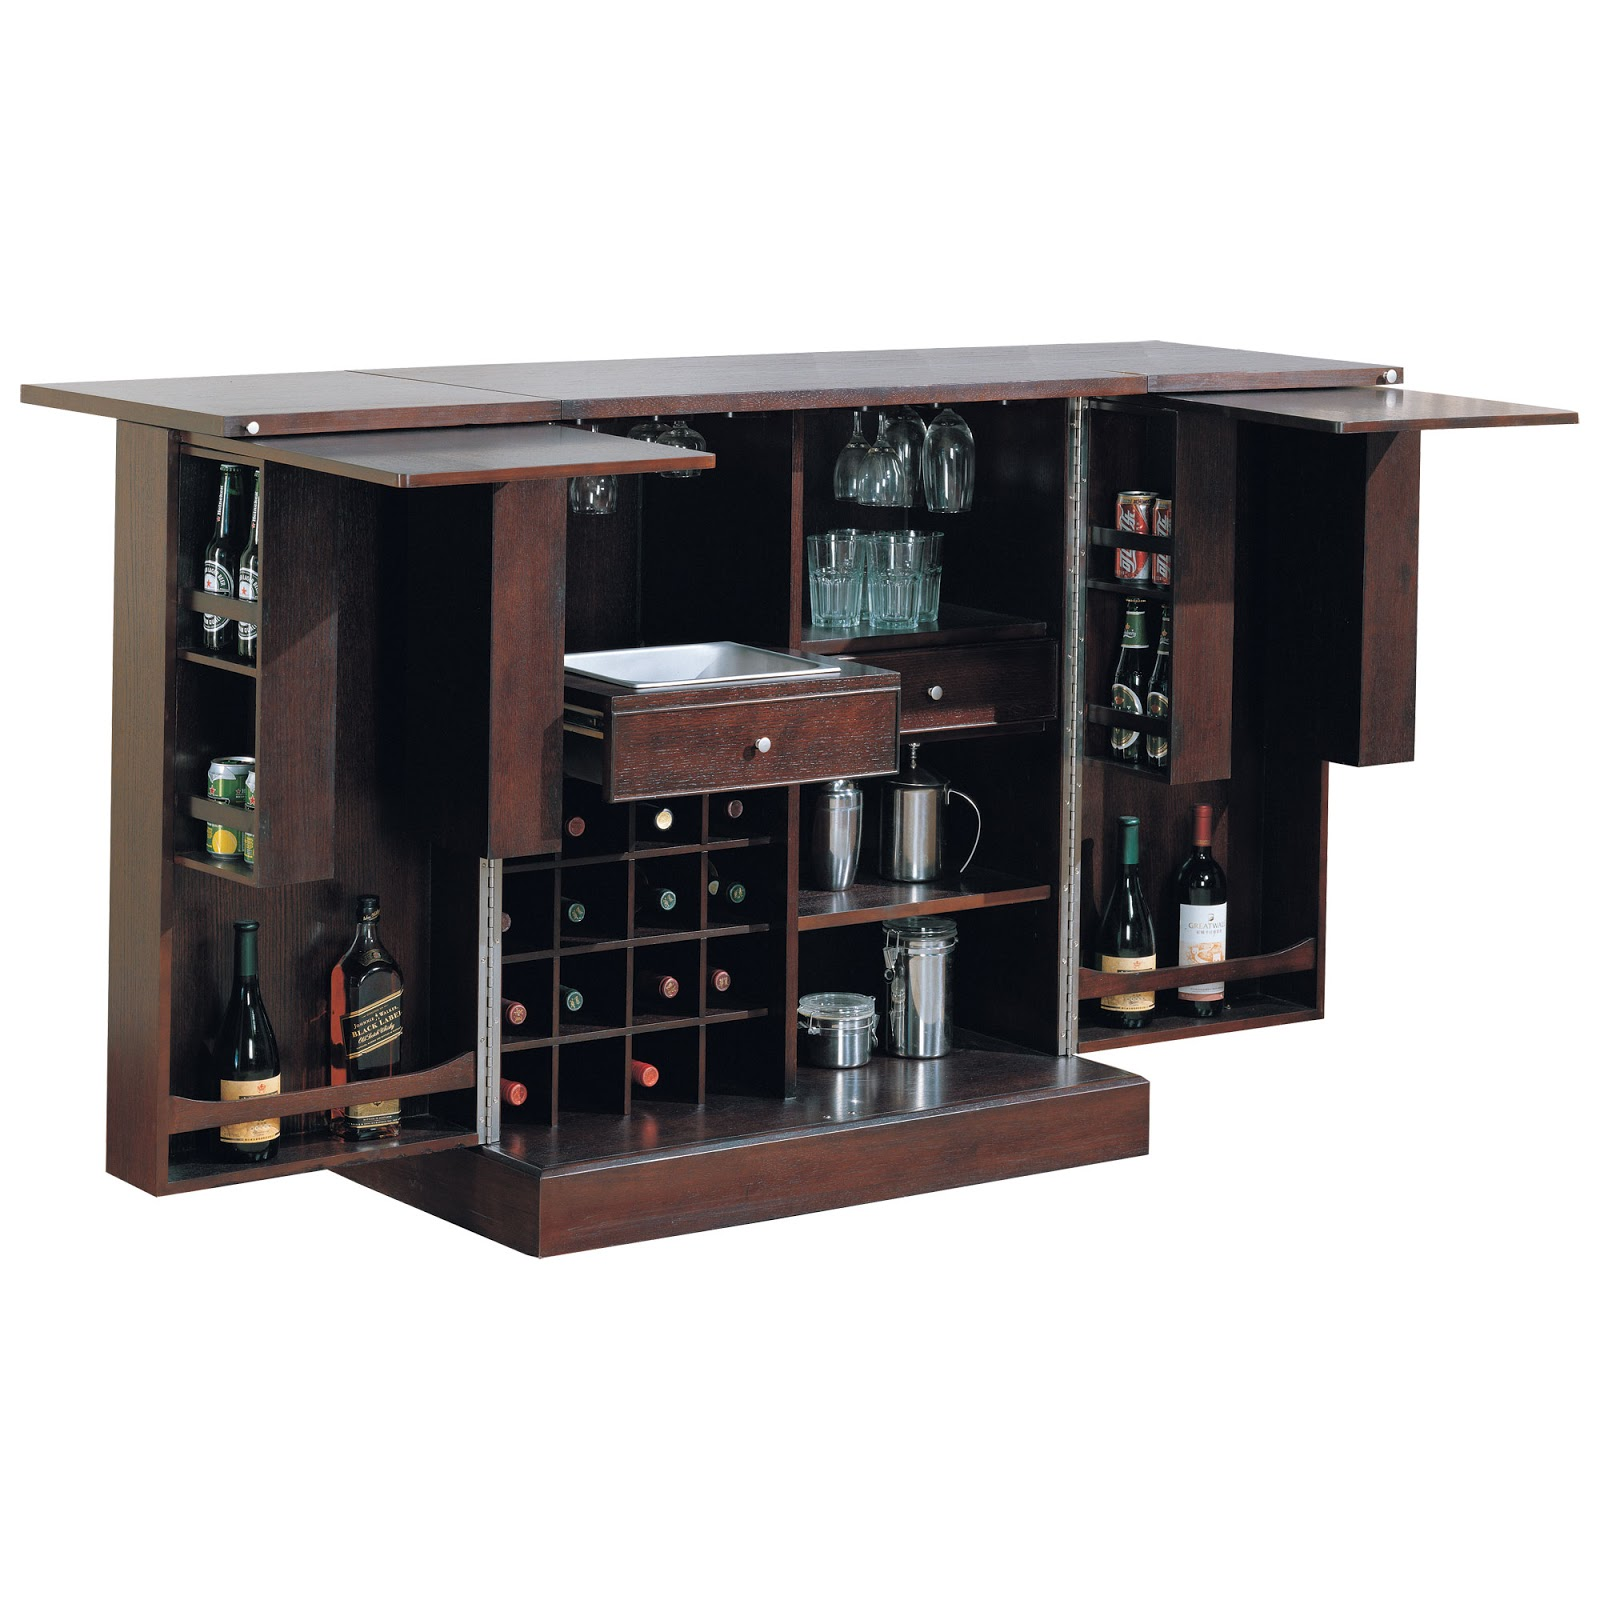 The Living Room Wine Bar Home Bar Furniture Design Ideas House Decor